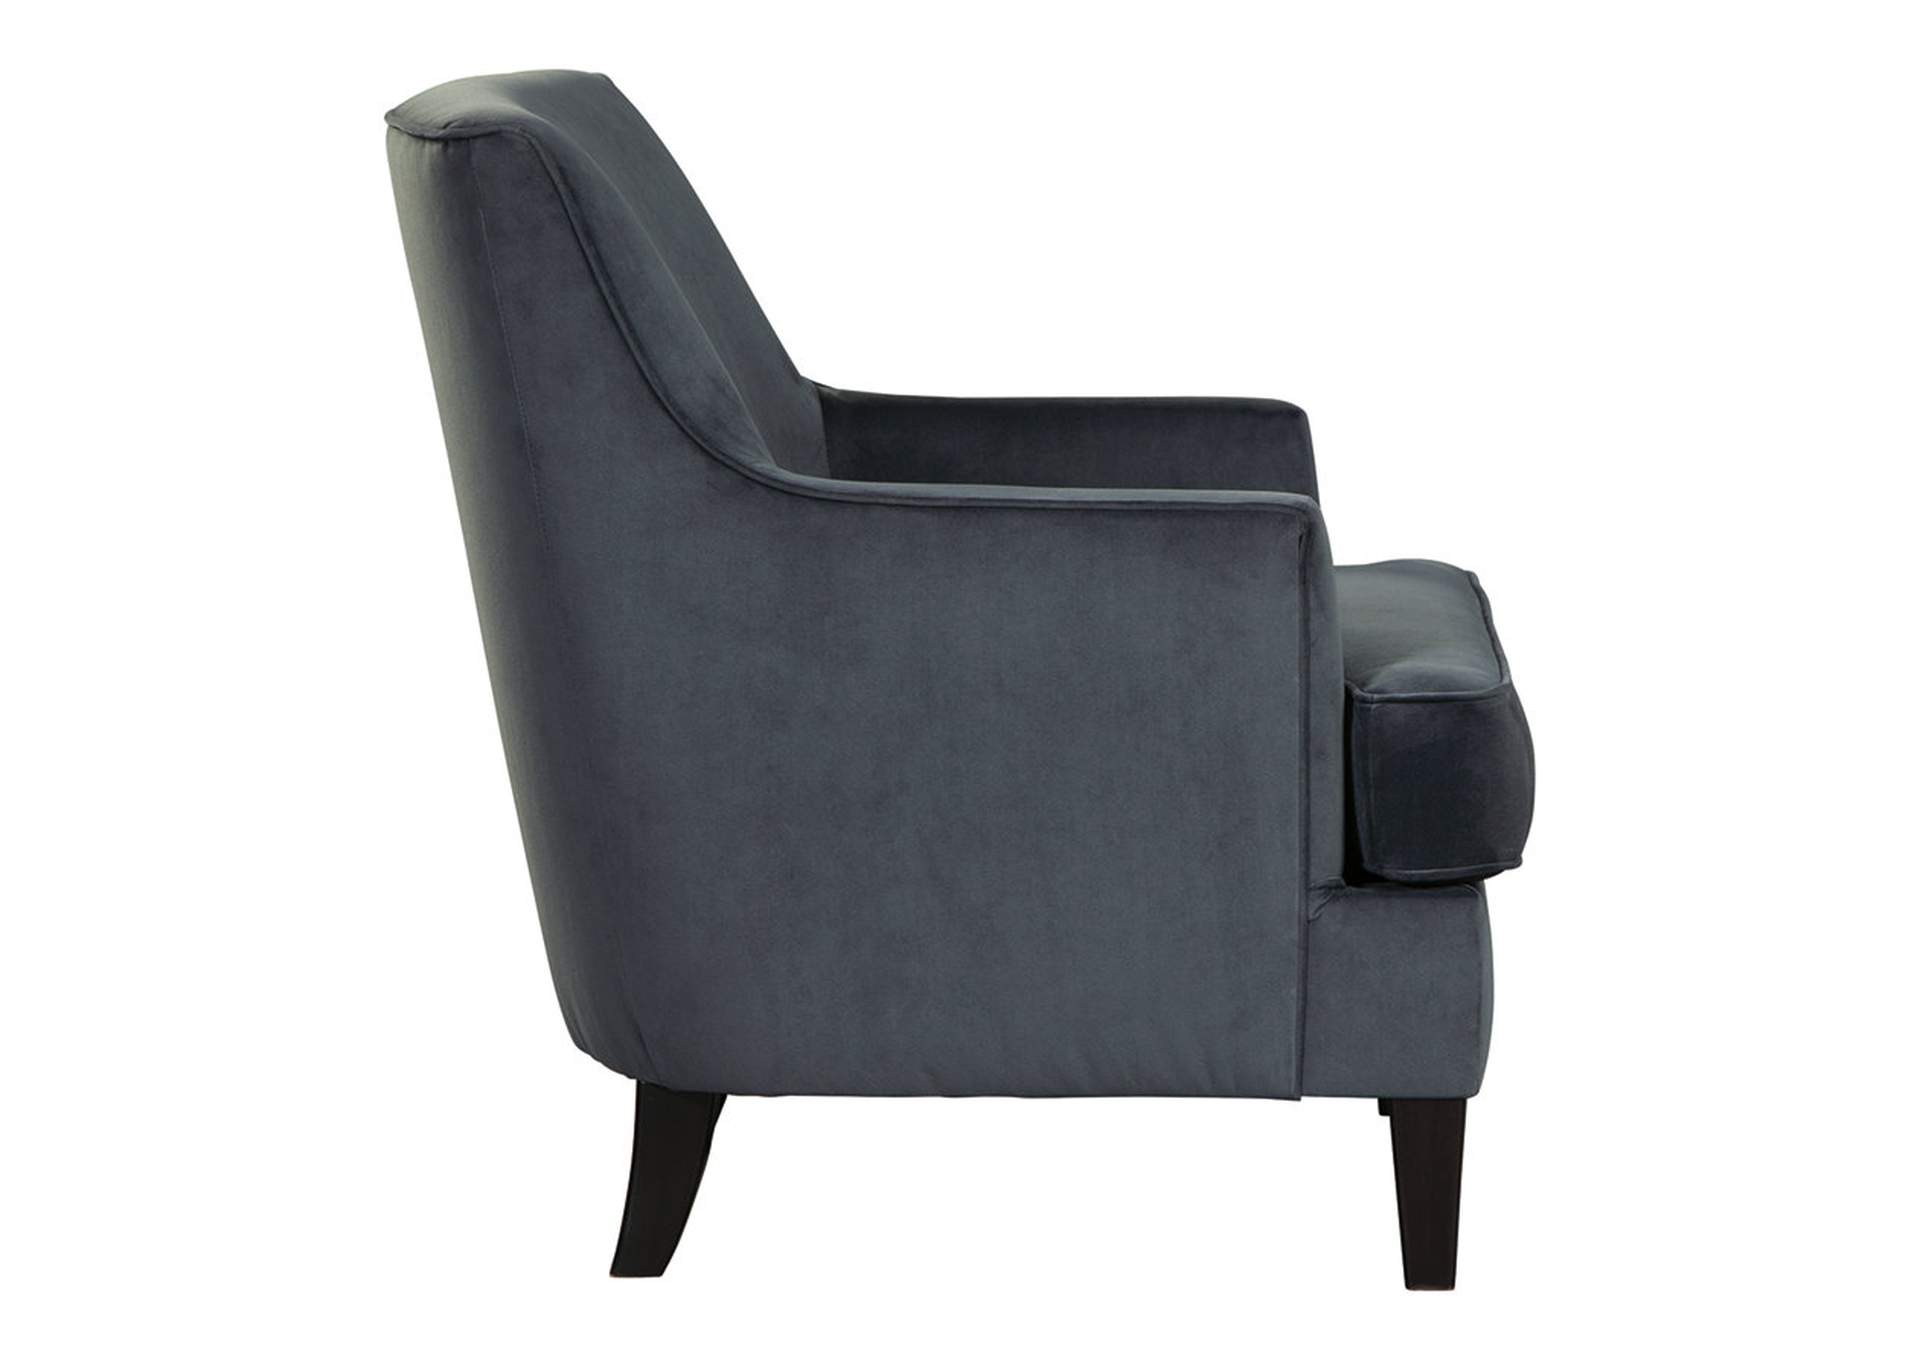 Kennewick Shadow Chair,Signature Design By Ashley